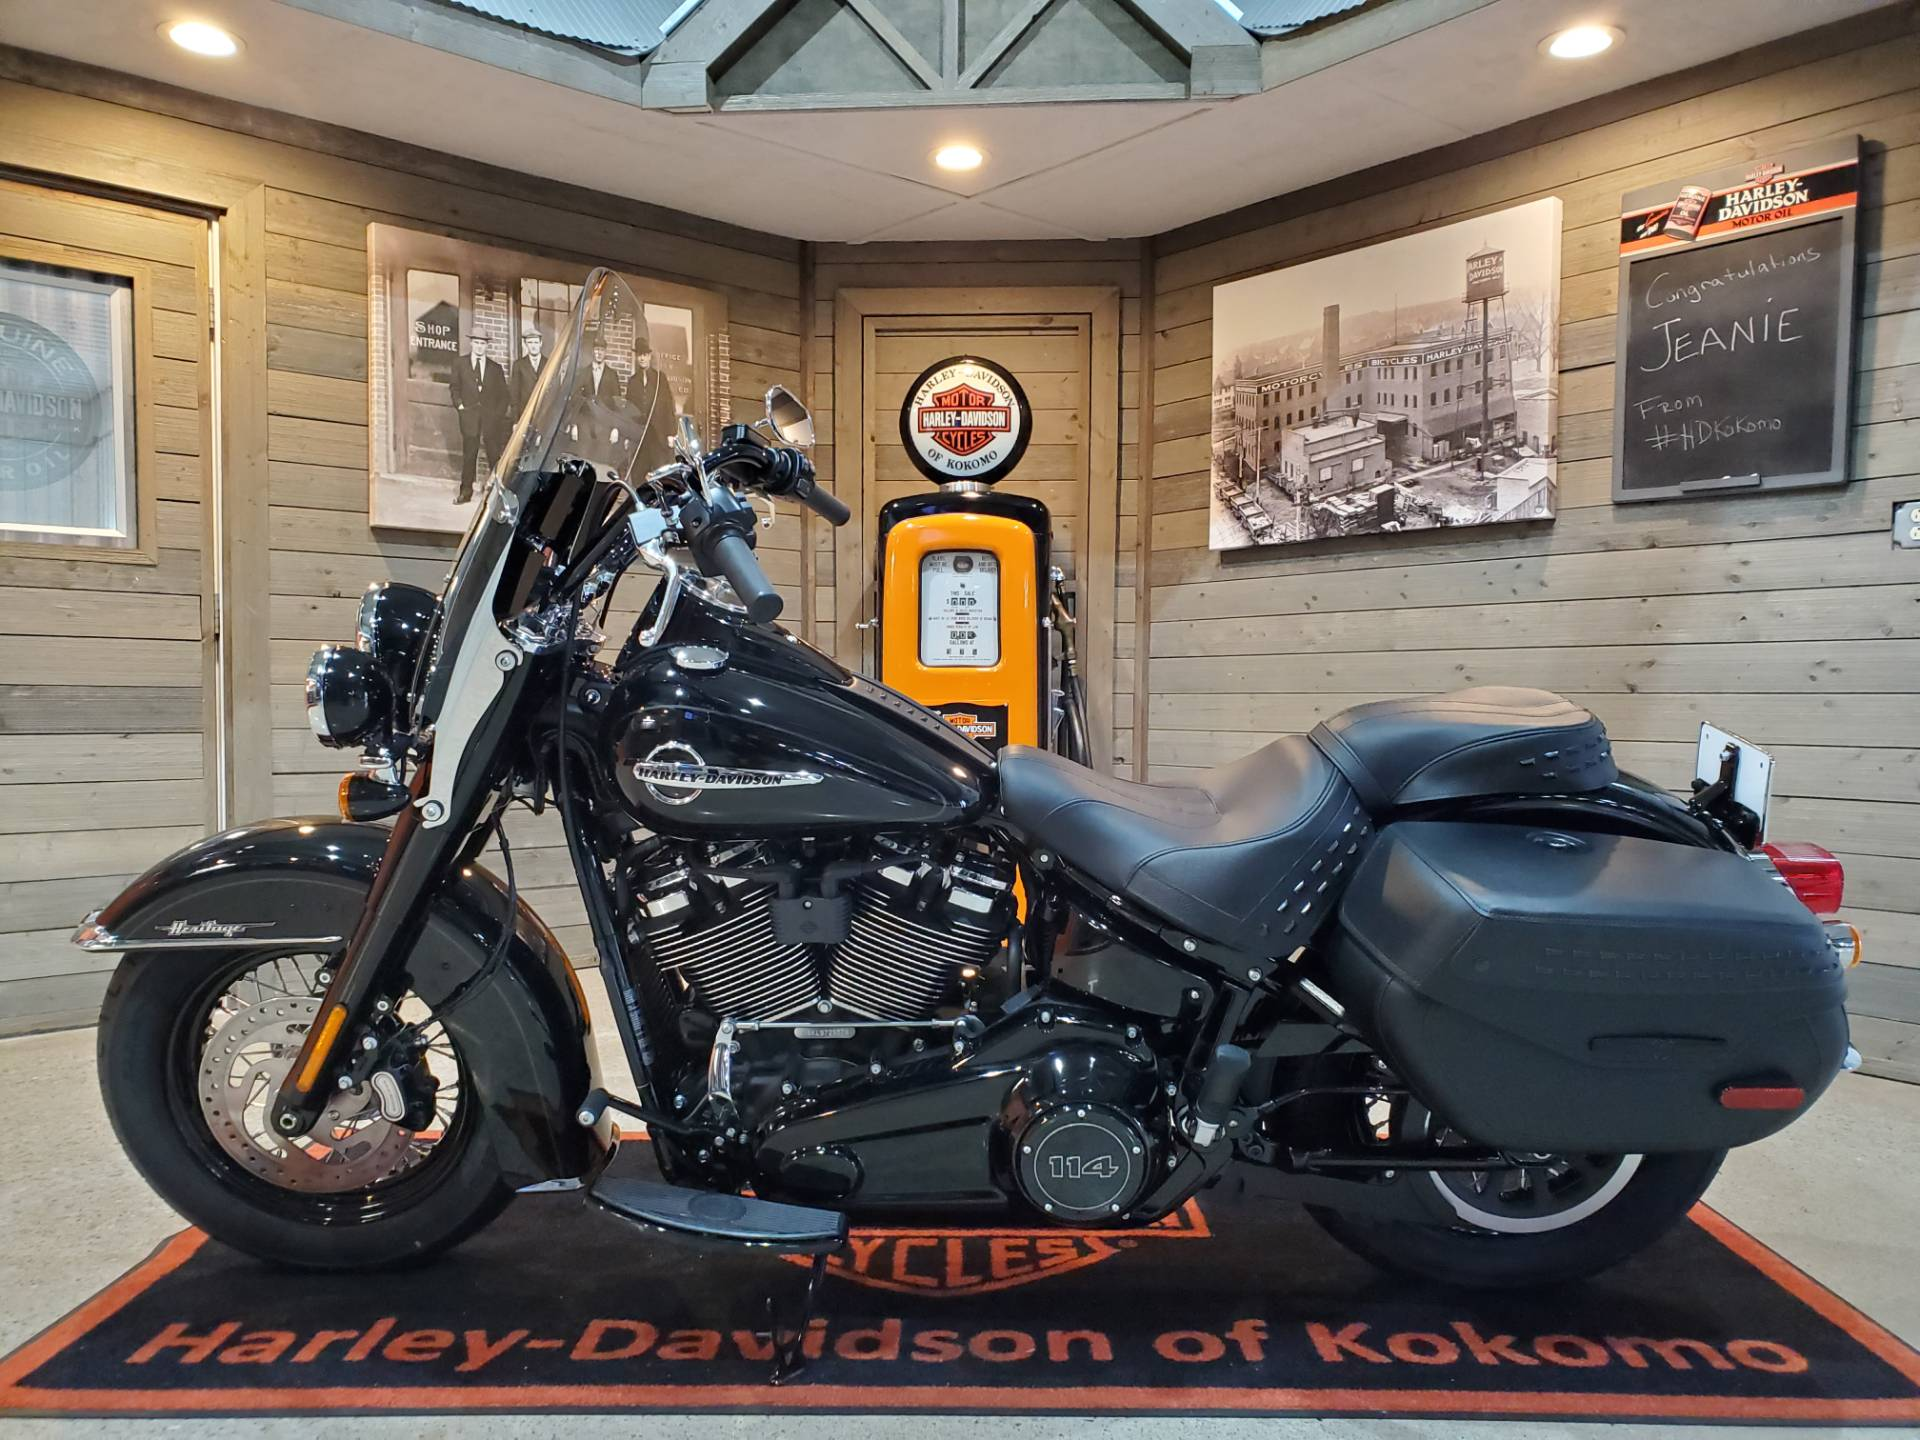 2020 Harley-Davidson Heritage Classic 114 in Kokomo, Indiana - Photo 7